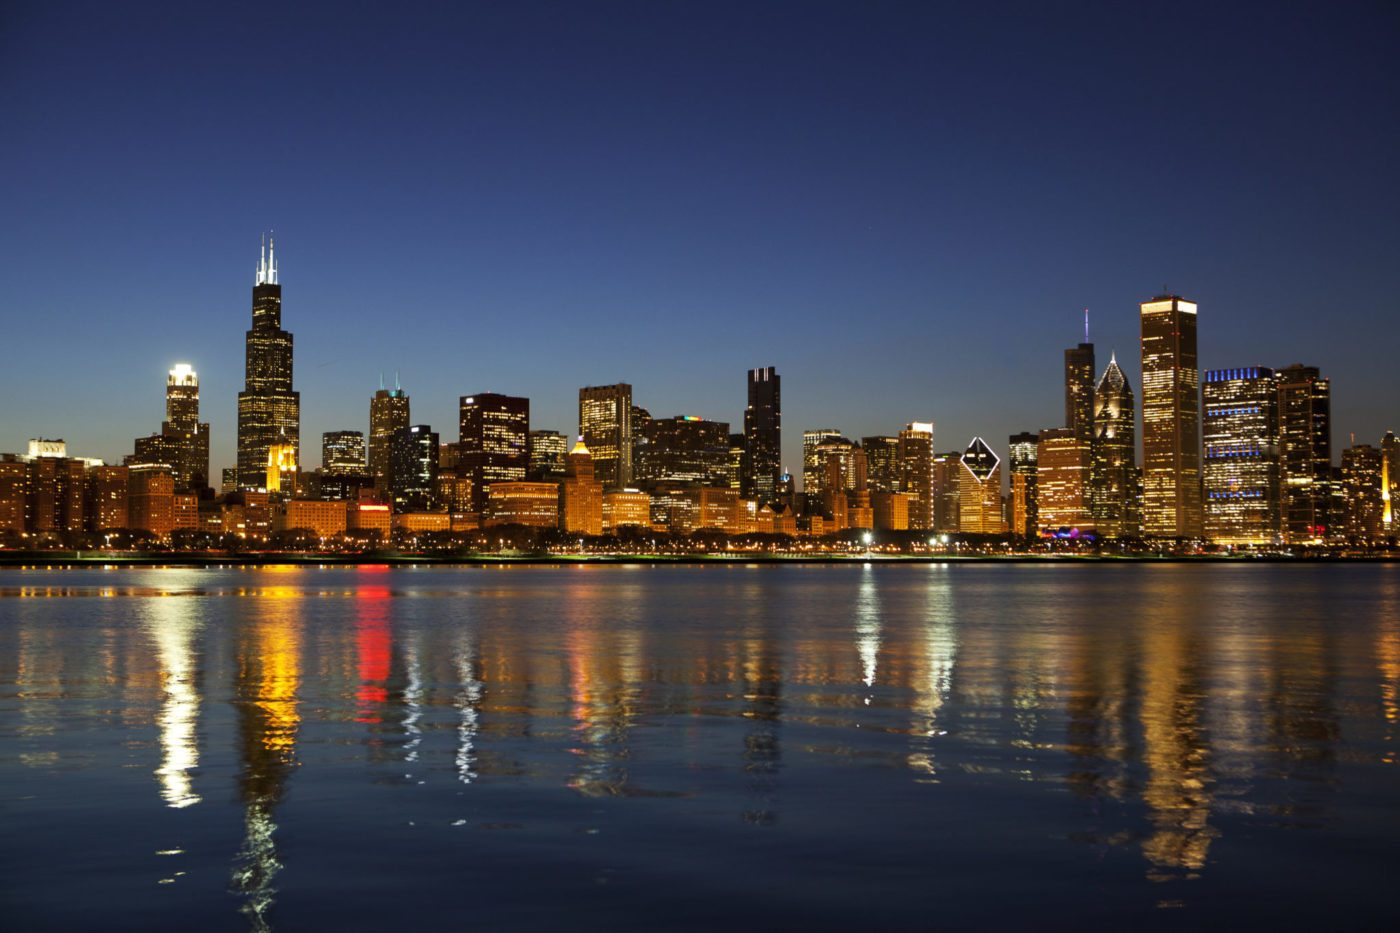 NAR takes steps to build 'Rockefeller Center'-like headquarters in Chicago